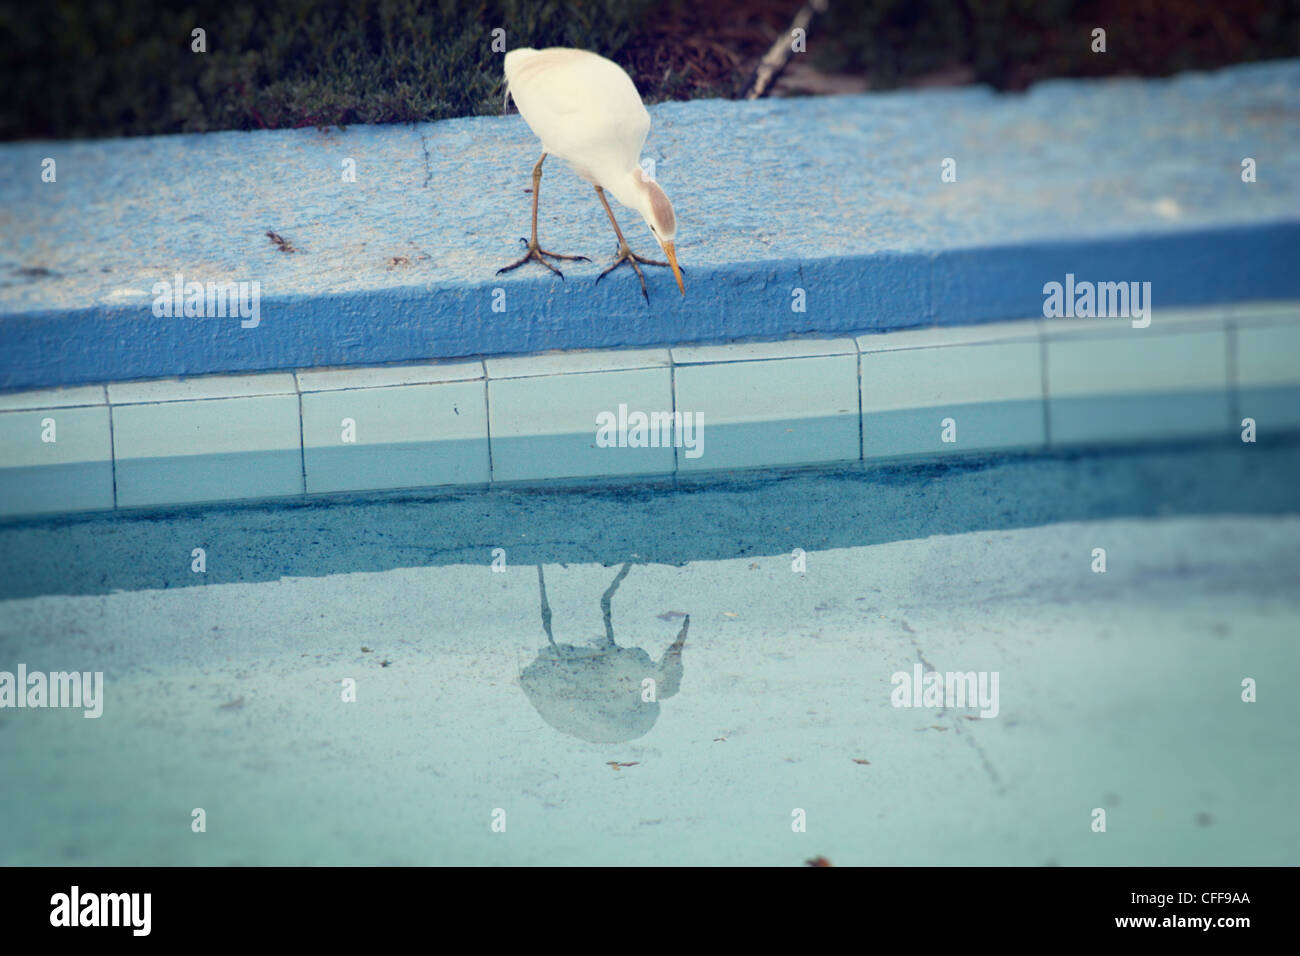 Narcissus Bird - a bird seems to be admiring its own reflection in the water of a swimming pool - Stock Image